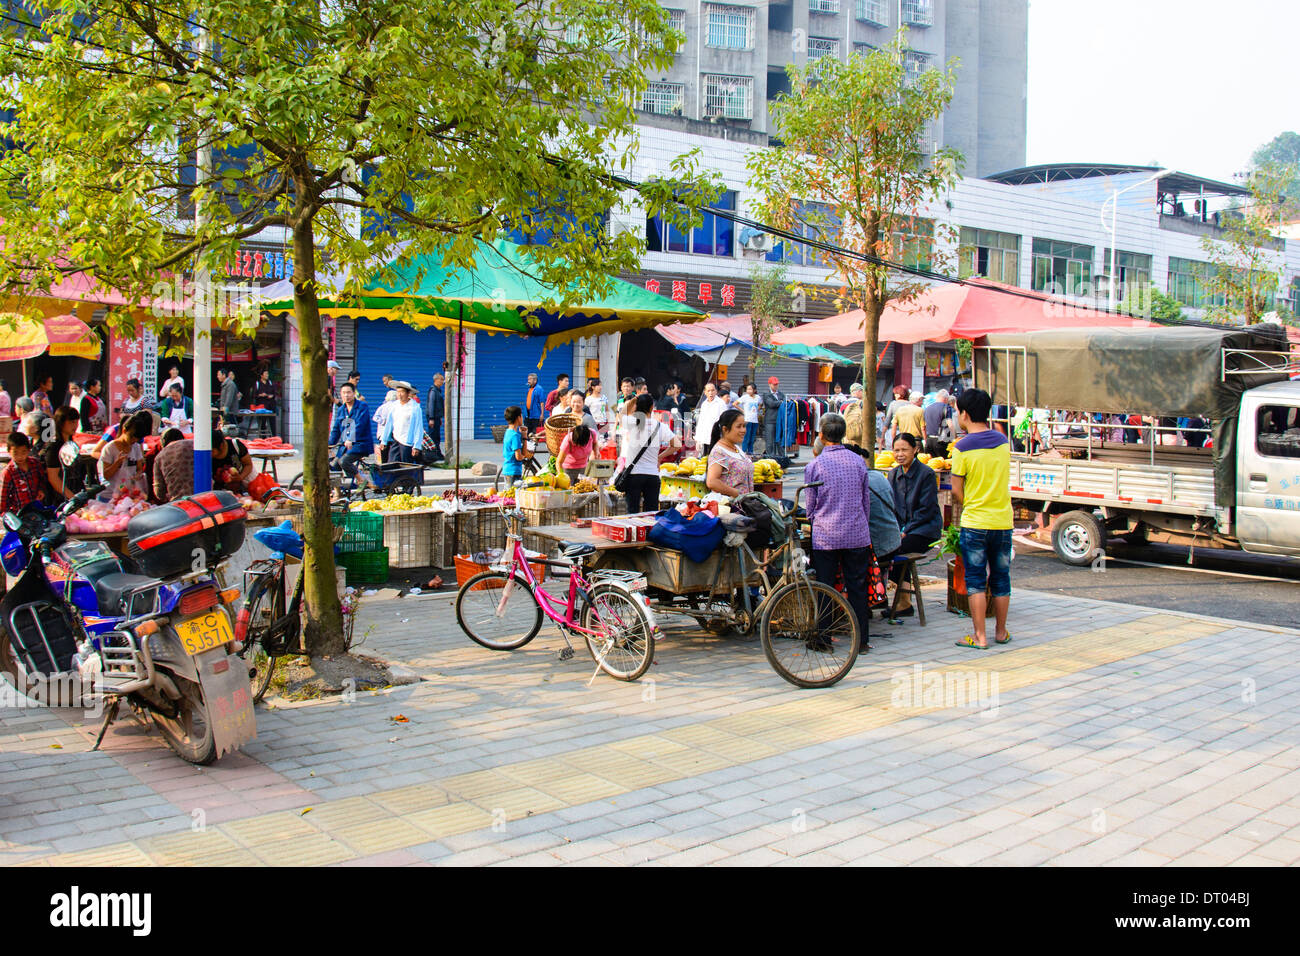 China, Xian, outdoor street market - Stock Image